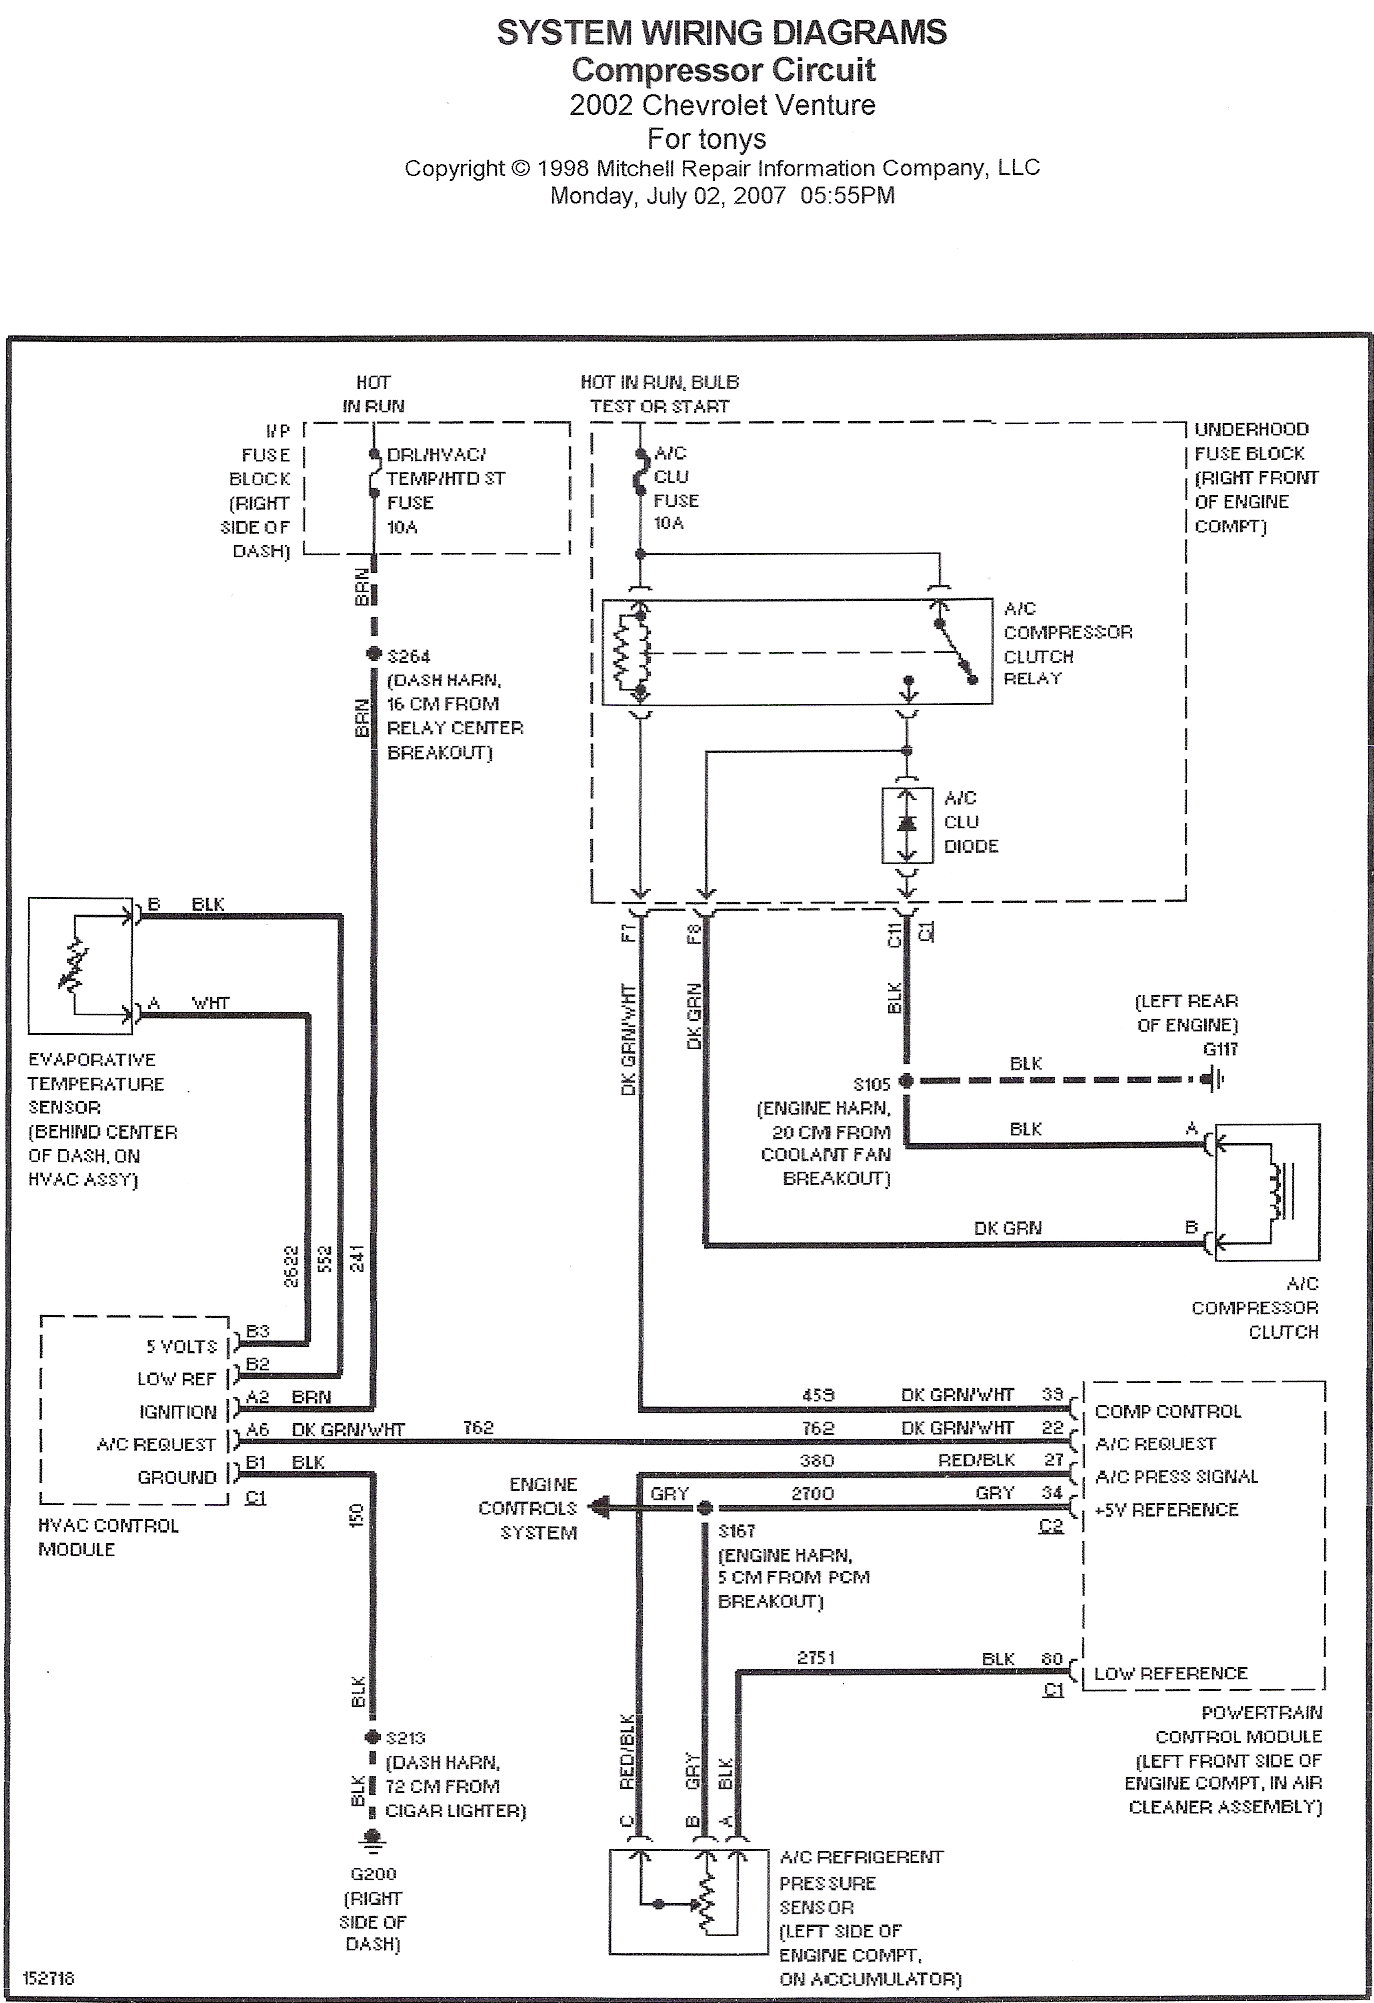 50 Inspirational 2001 Chevy Venture Cooling Fan Wiring Diagram